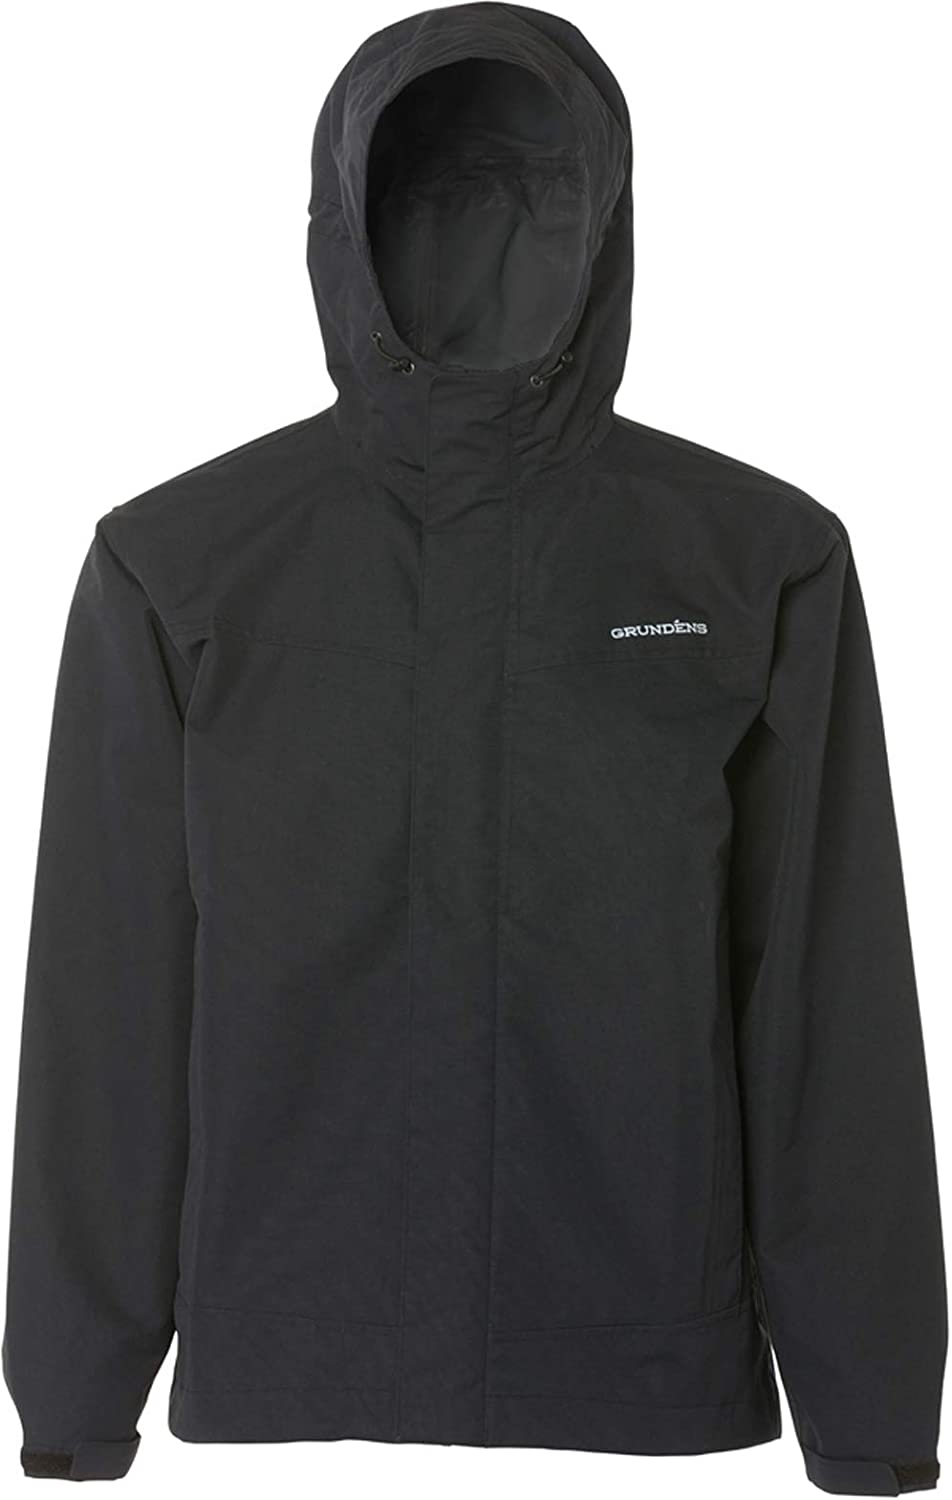 Grundéns Men's Full Share Jacket